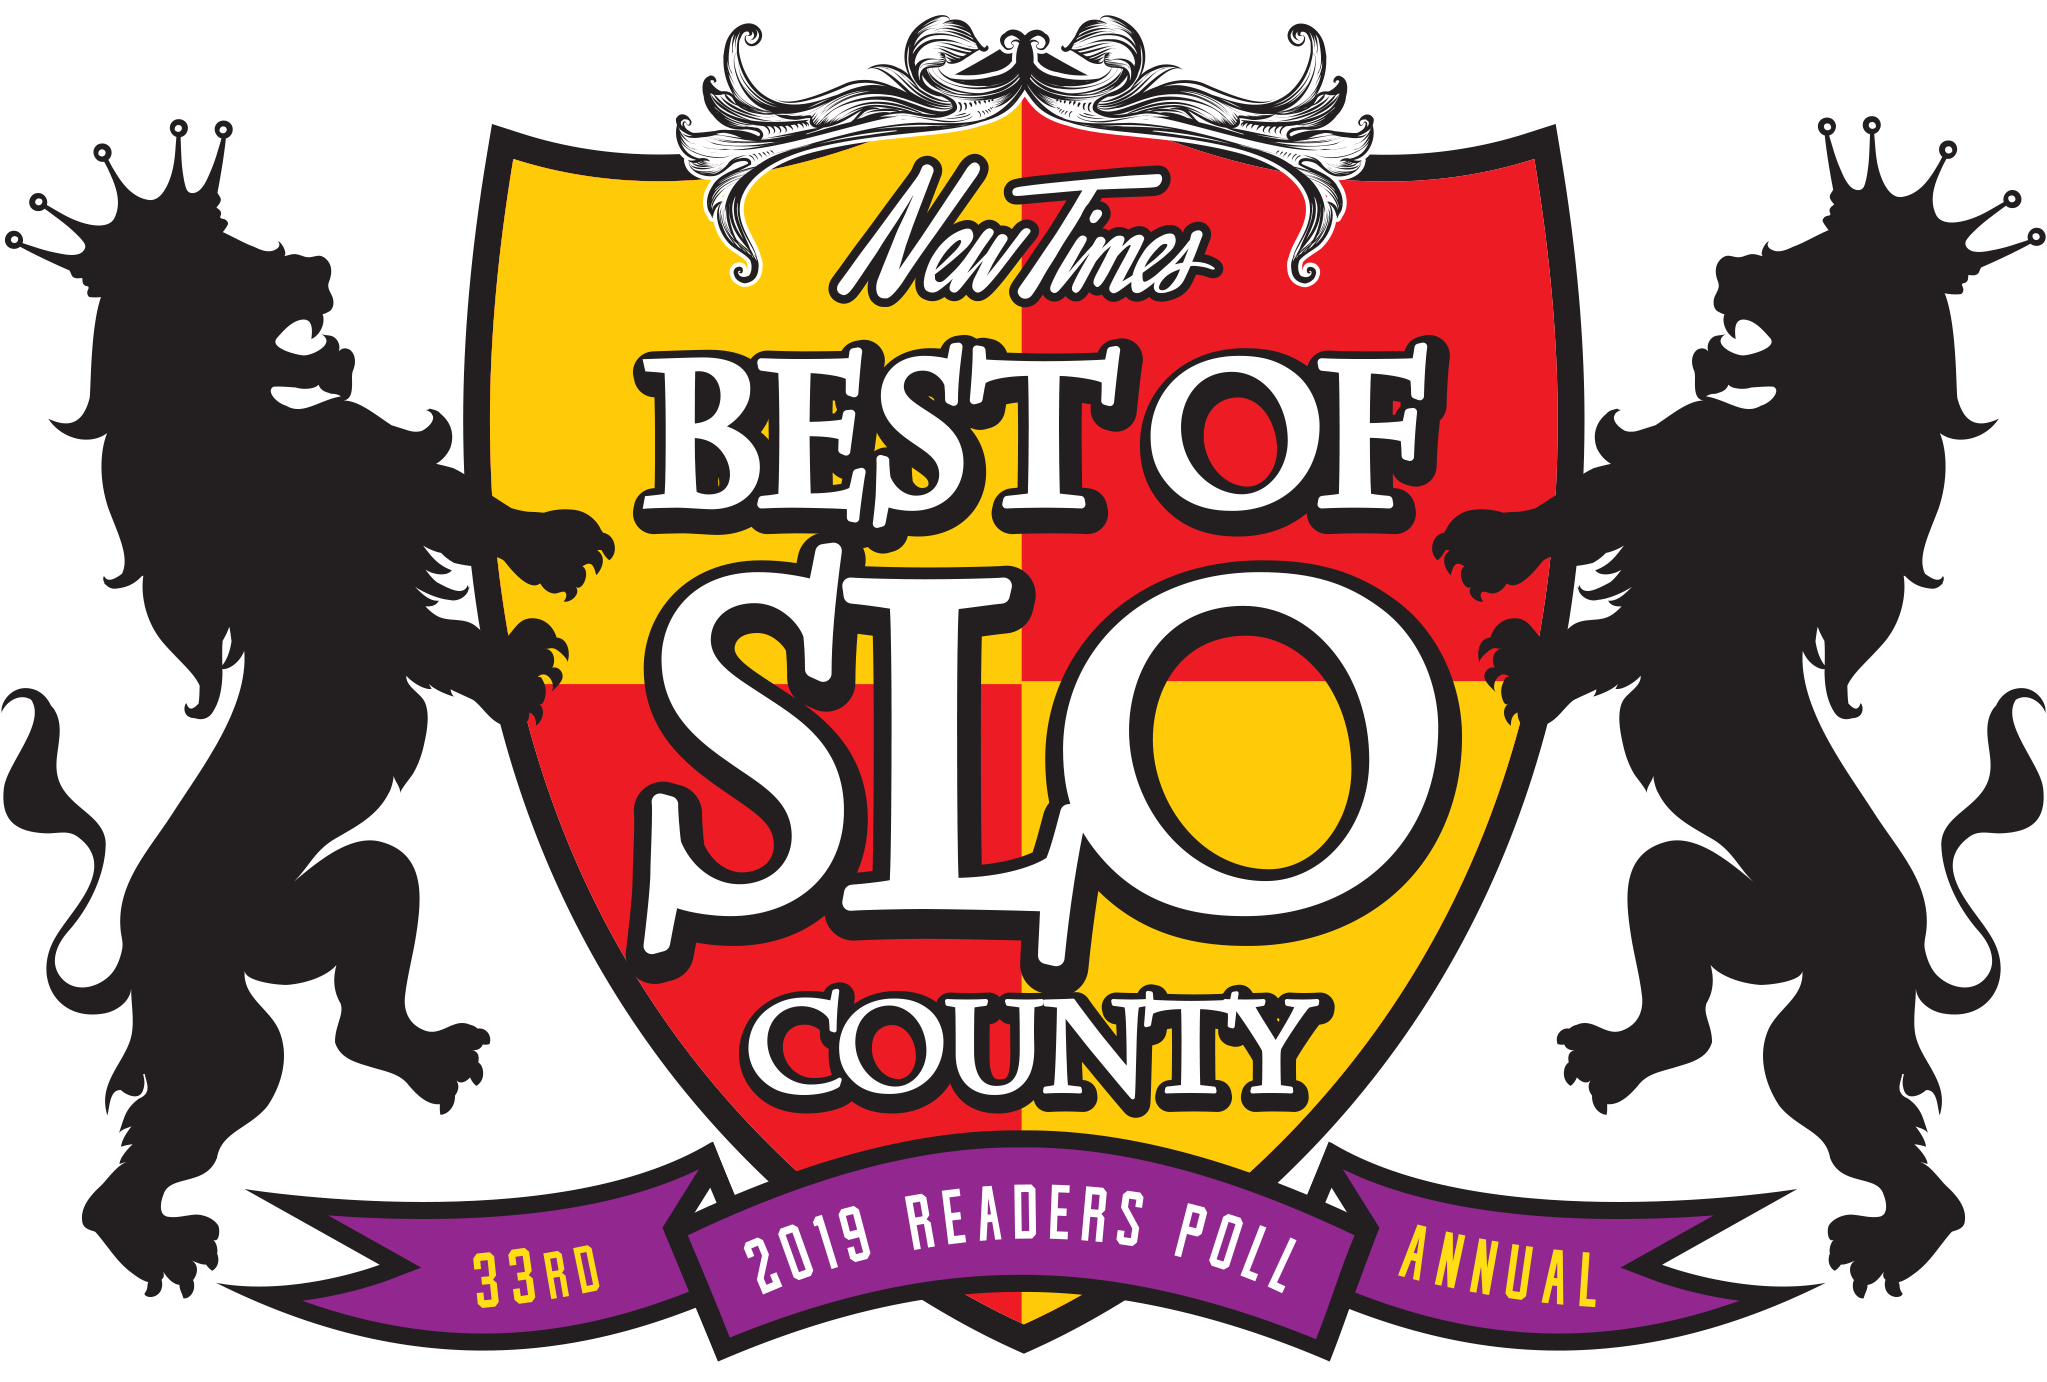 Best of SLO Award Image